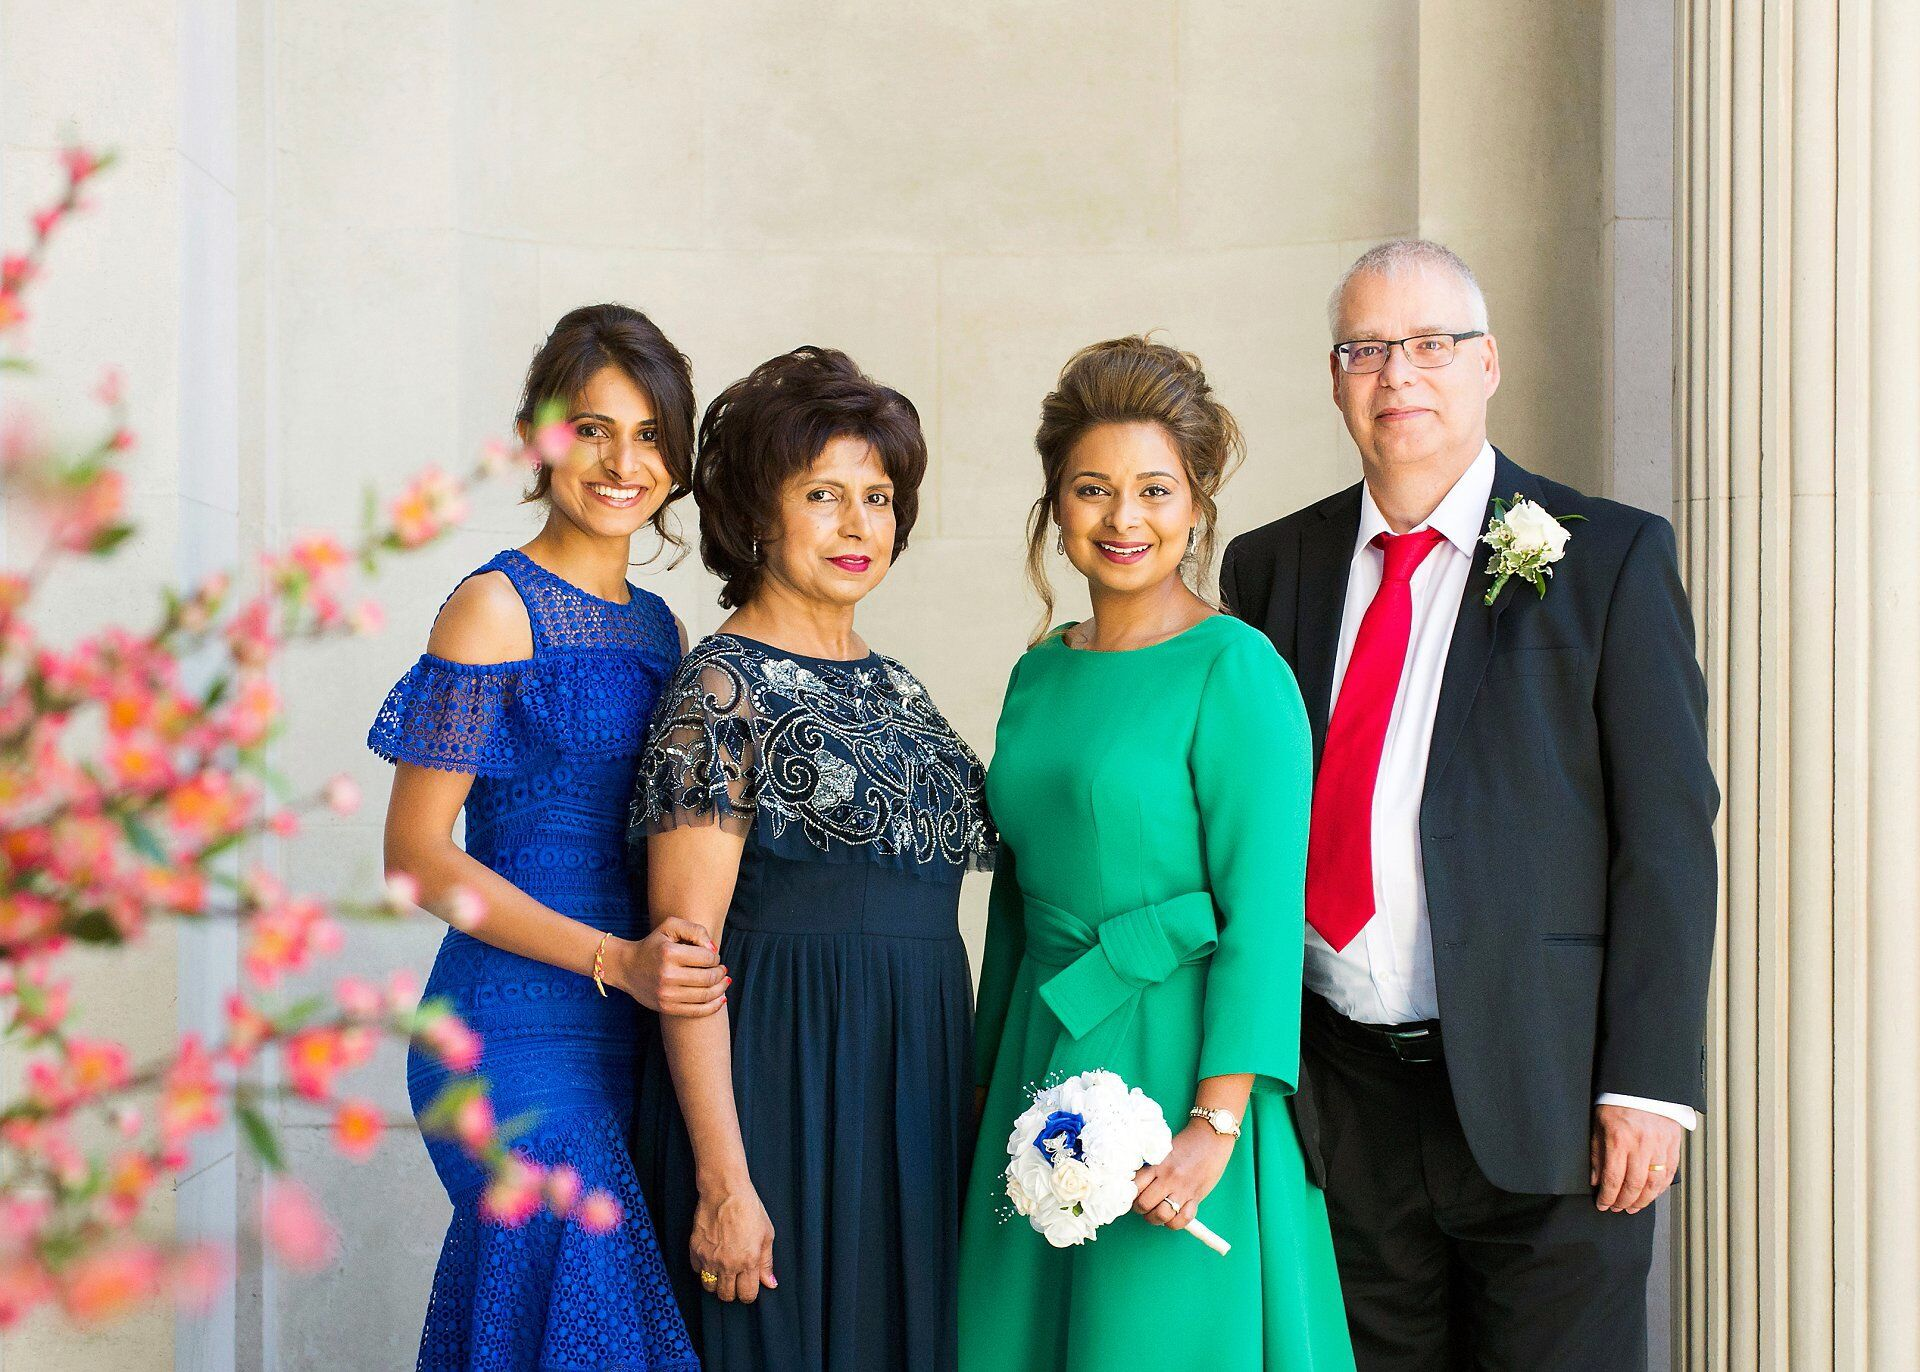 family group photograph dubai wedding photography for international clients from all over the world marrying in london